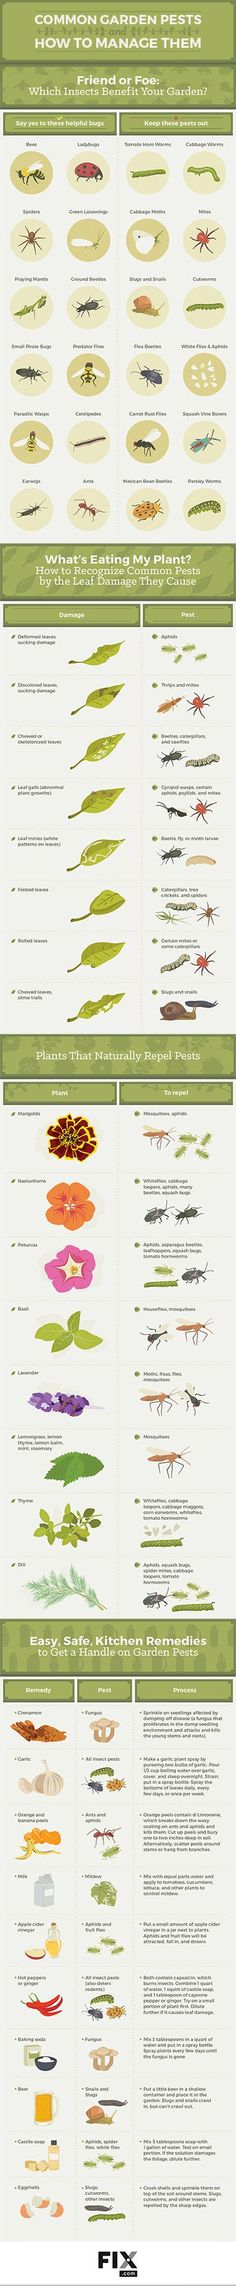 GARDEN CHEAT SHEETS | The Garden Glove - Gardening Living